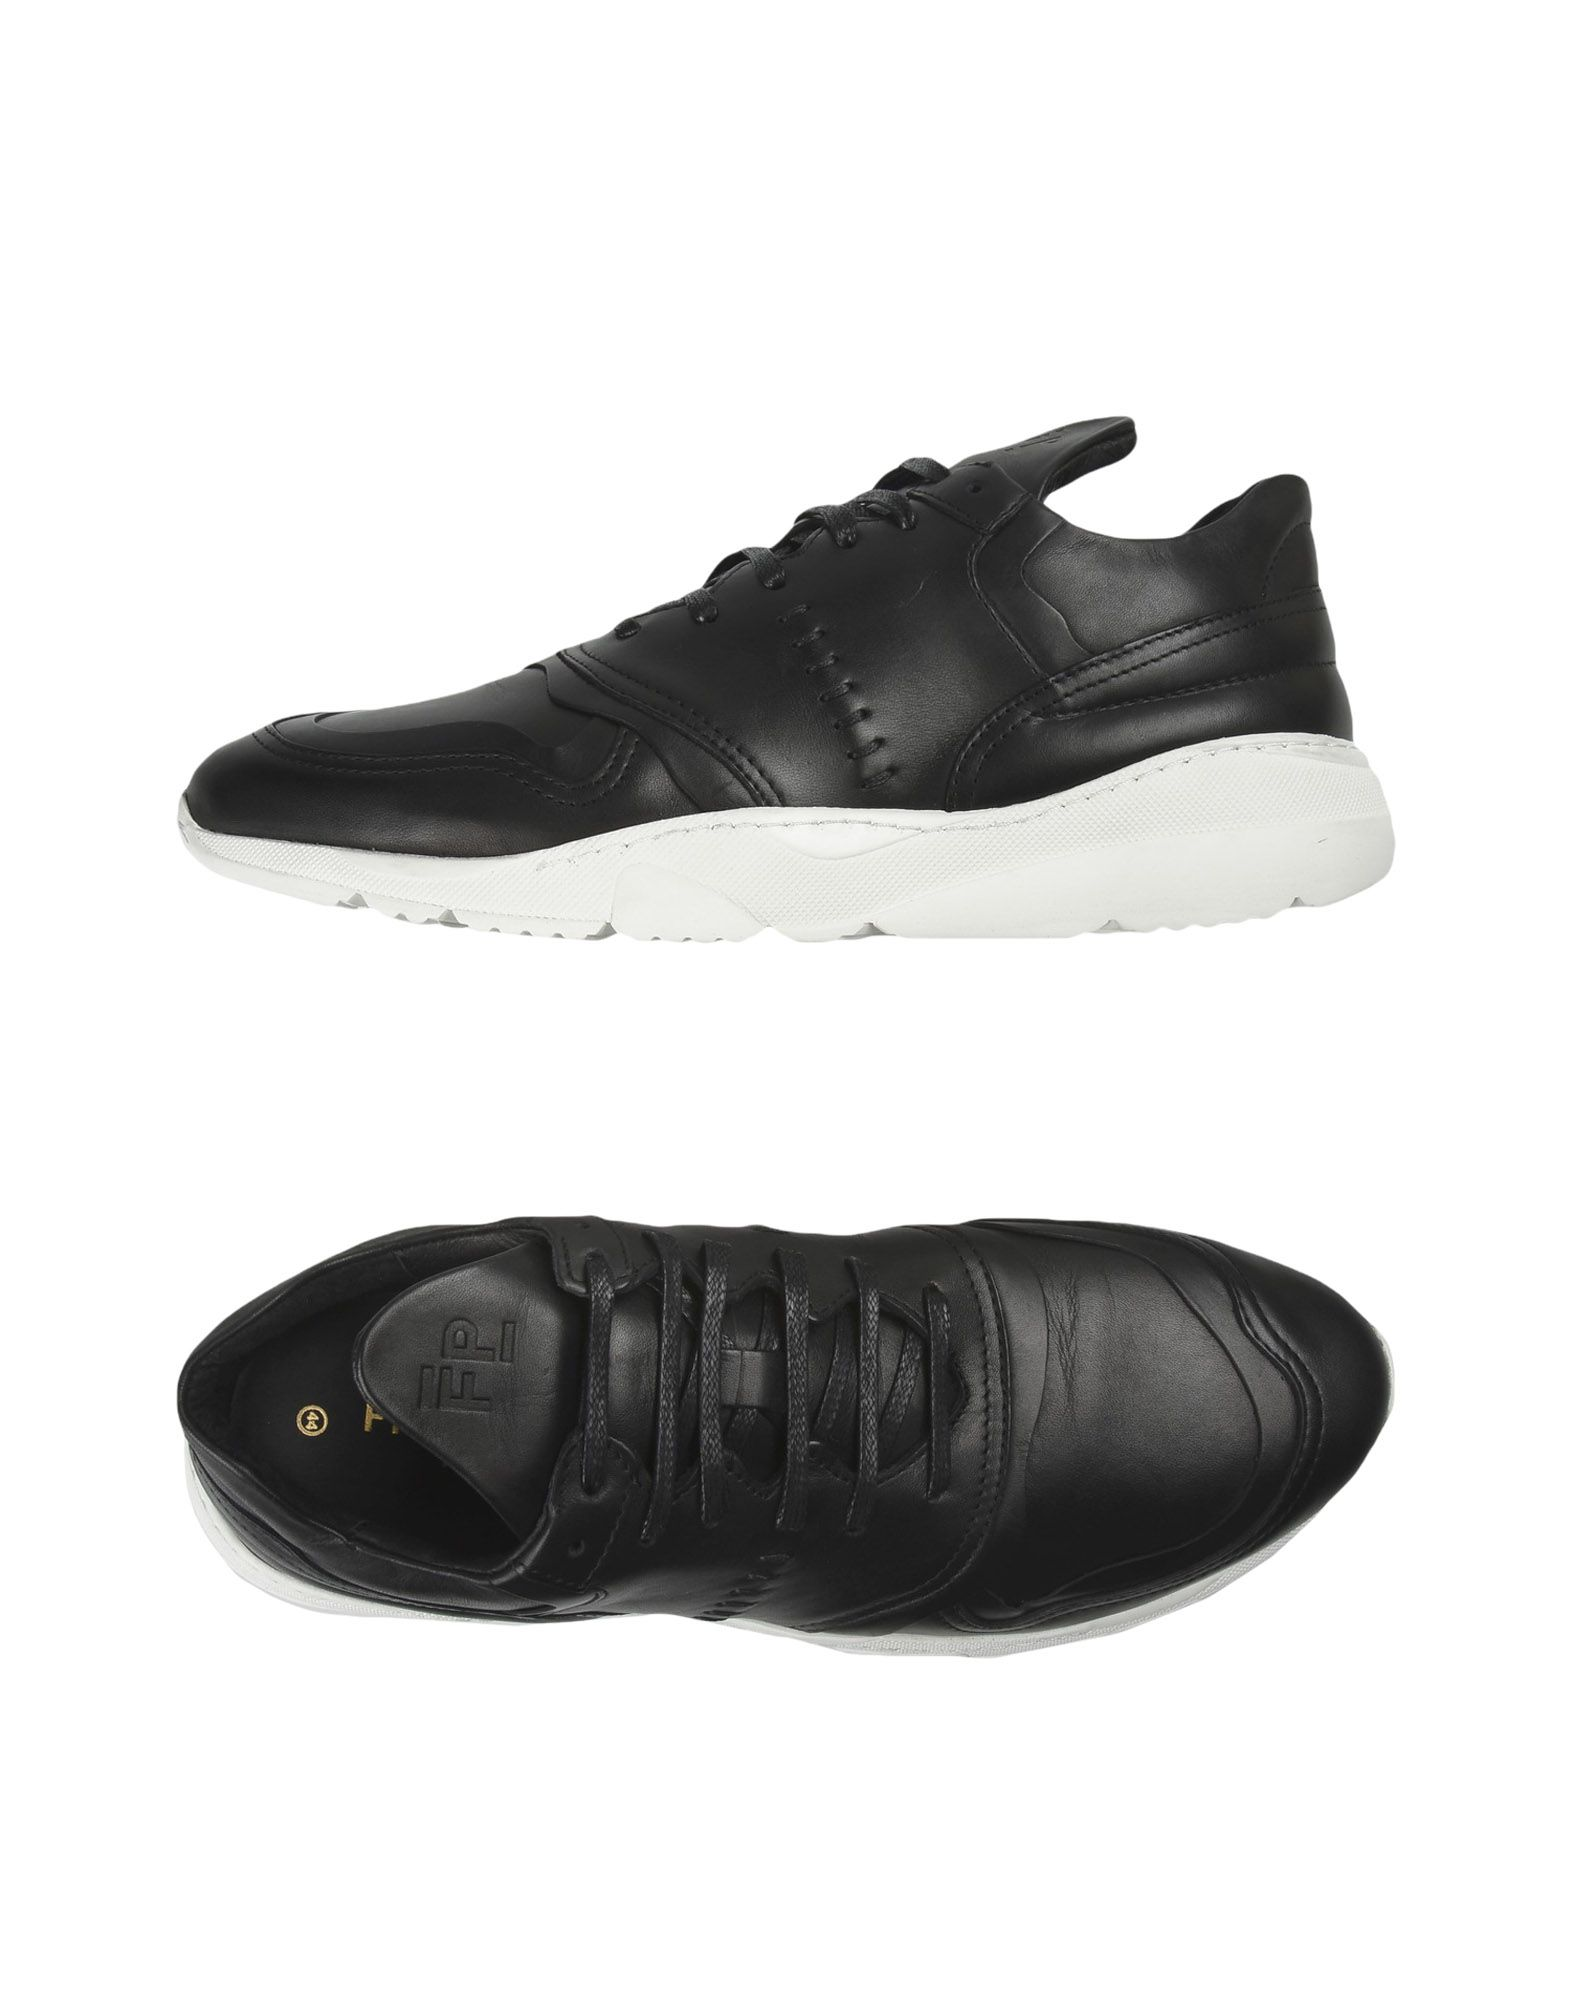 Sneakers Filling Pieces Oc Runner Ss17-127 - Uomo - 11225089BW